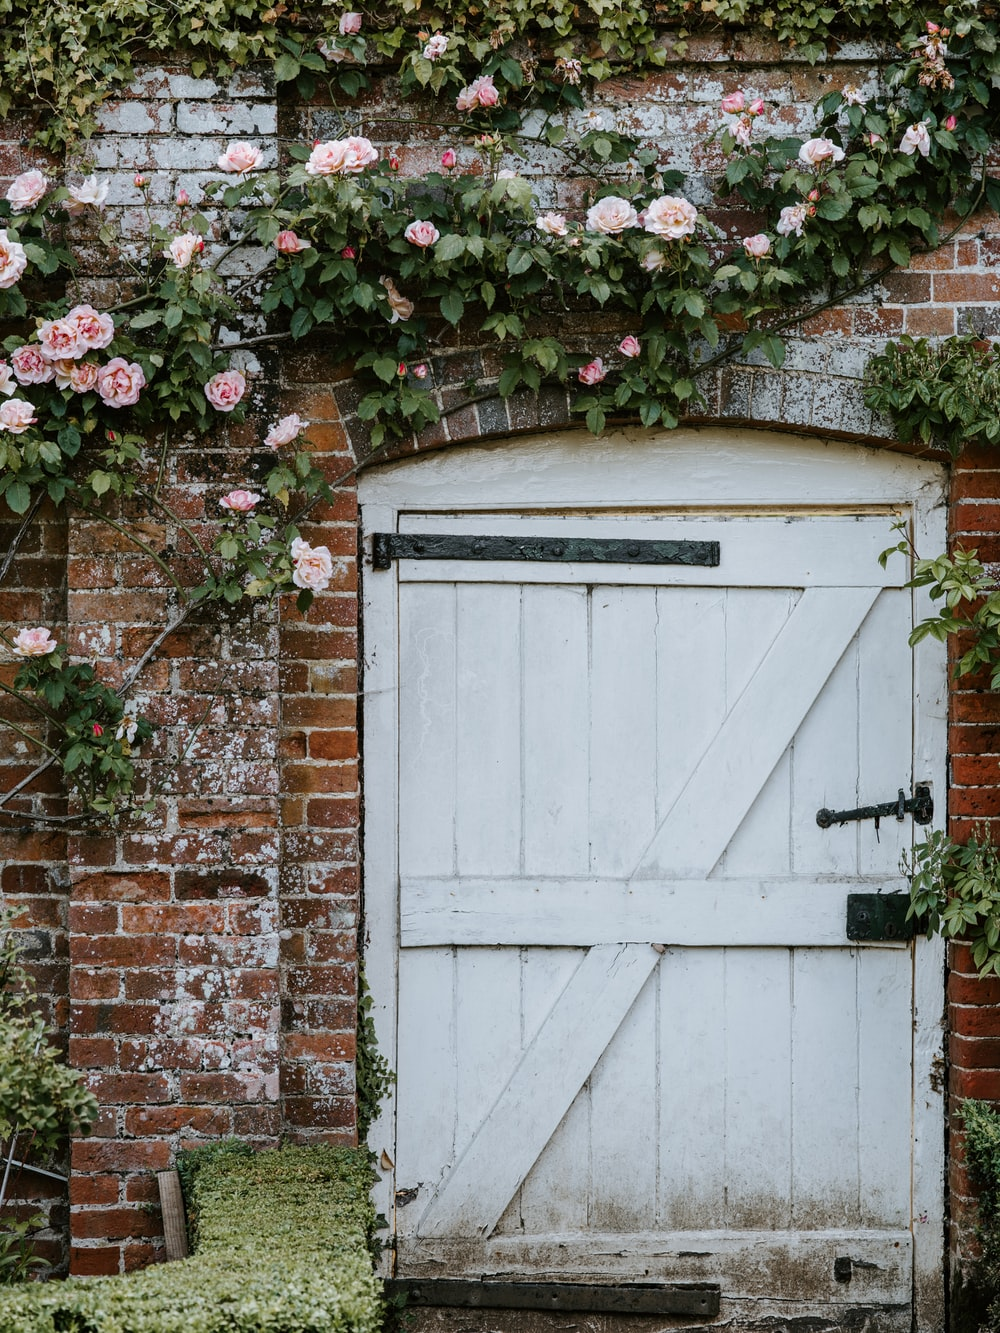 white wooden door surrounded by pink rose vines